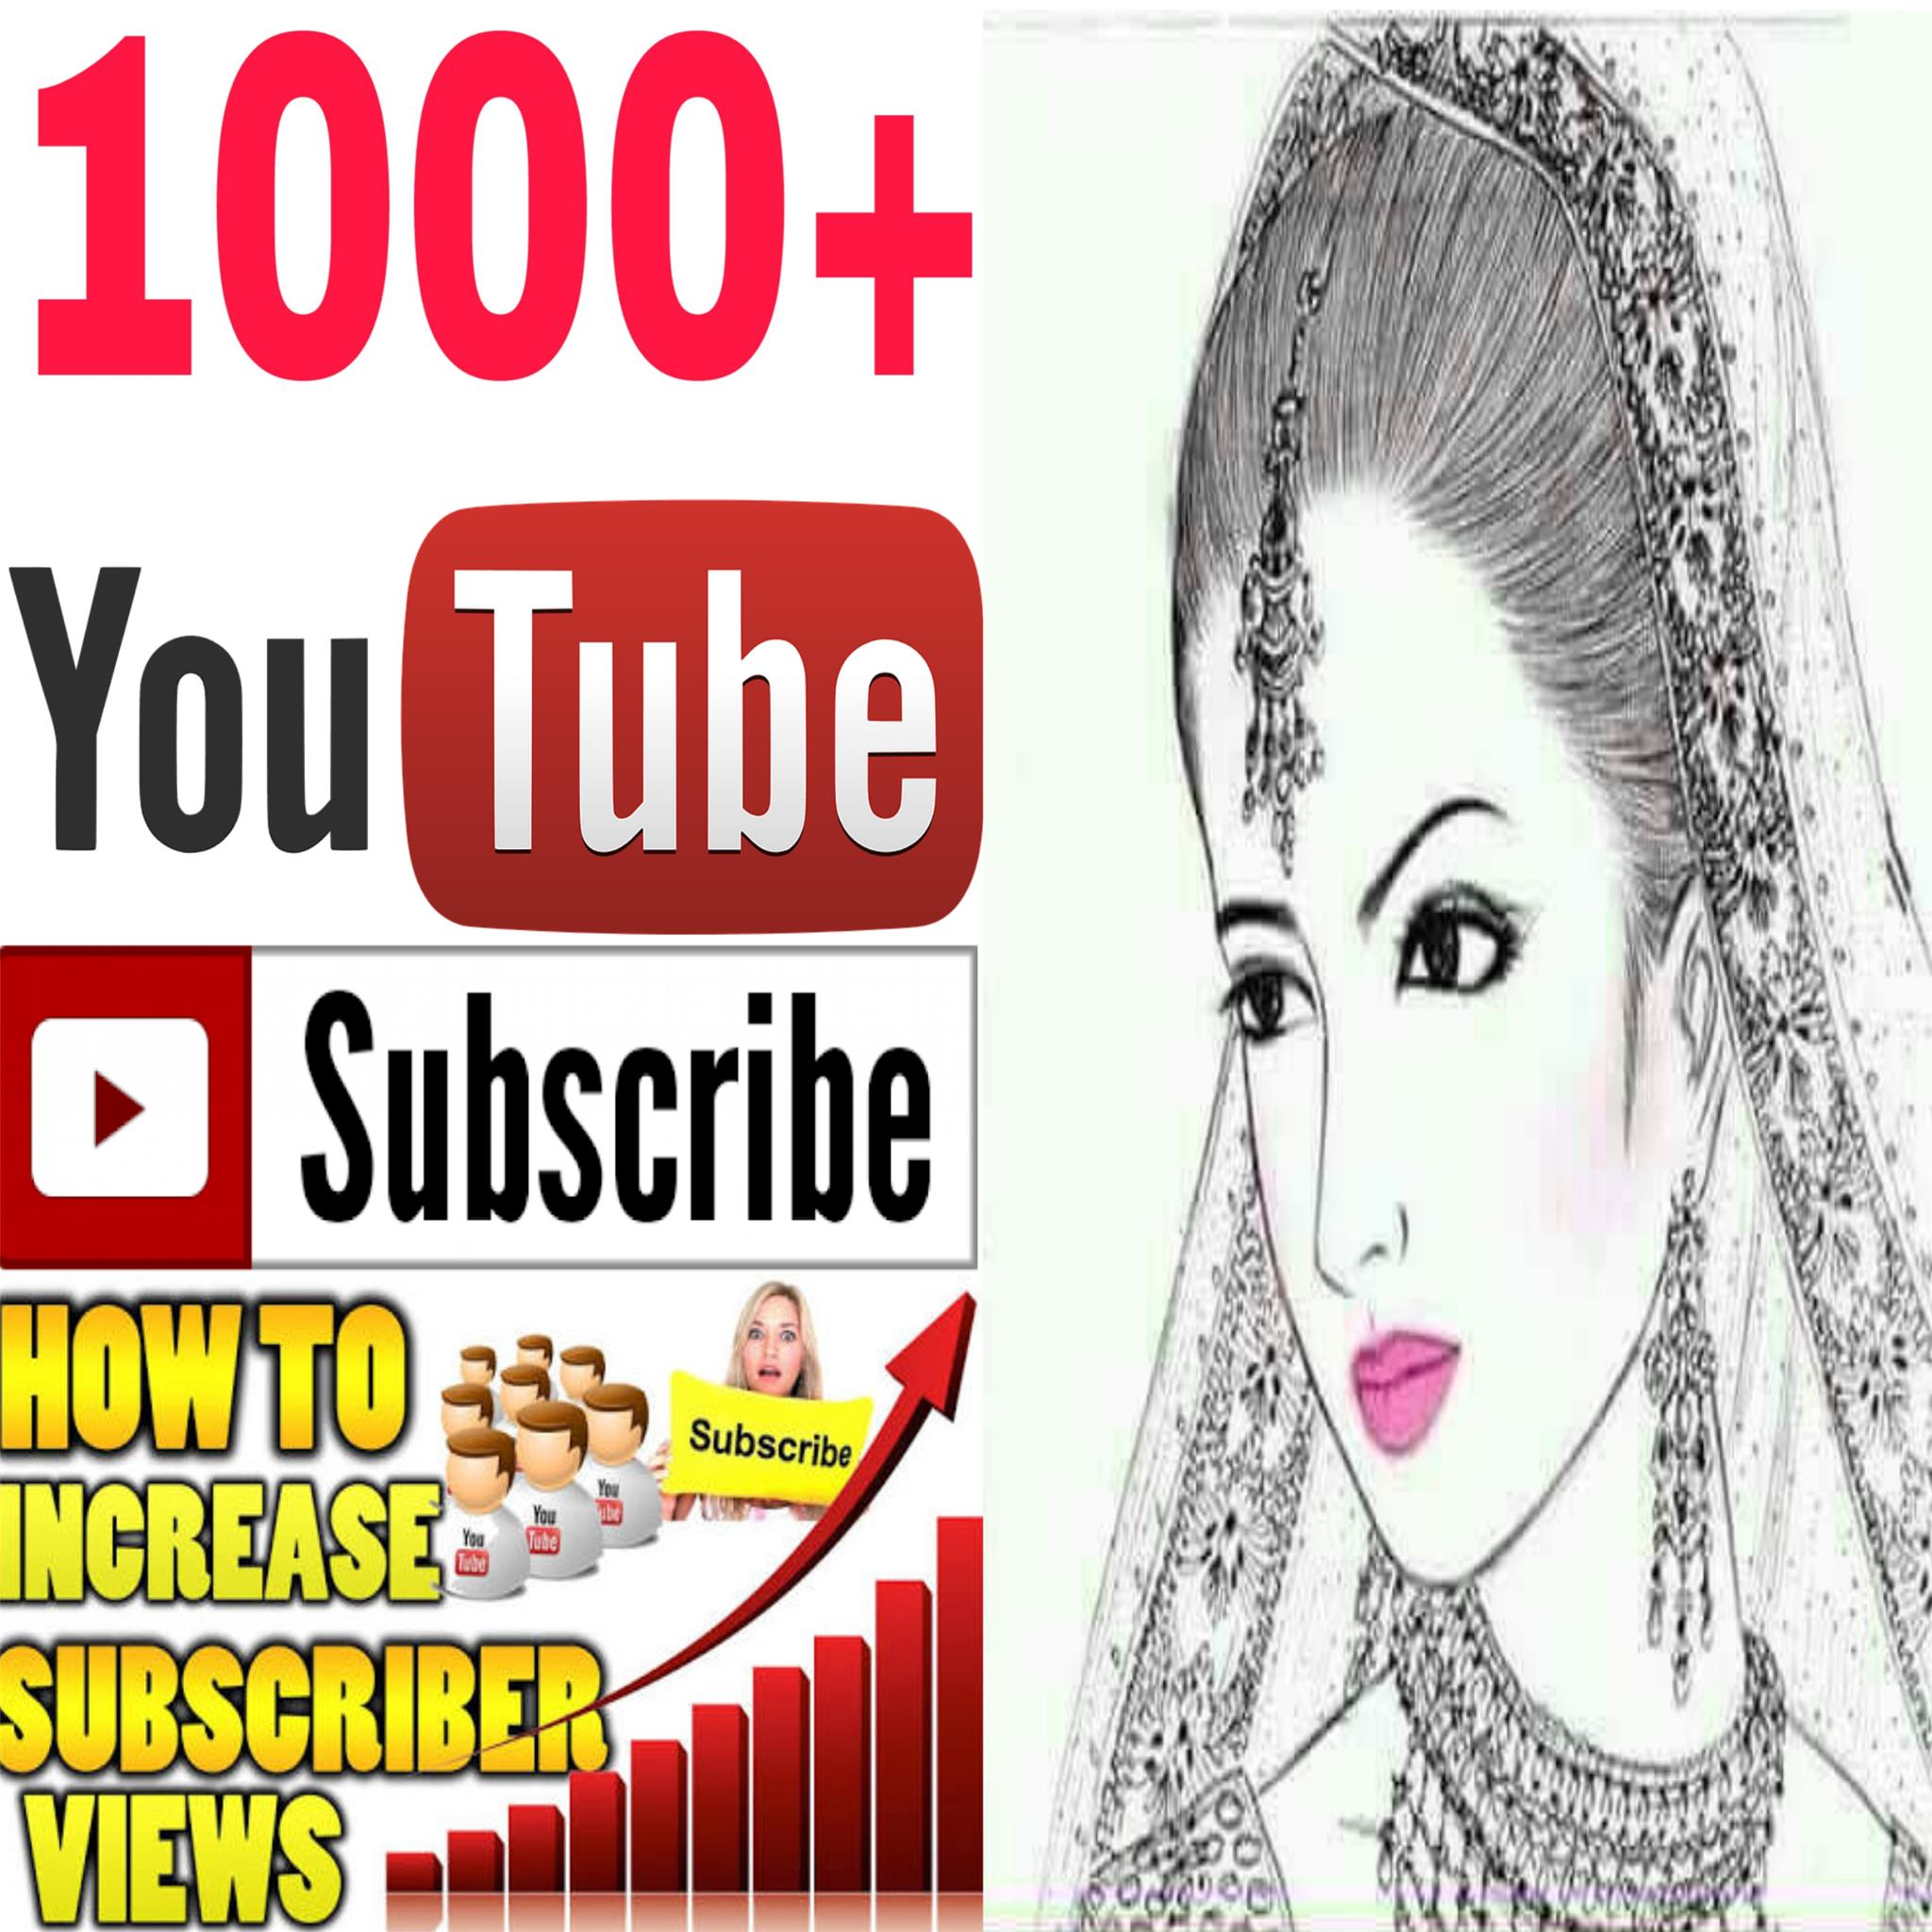 Instant Add safe 1k/1000  channel subscriber non drop Guaranteed  must be rifile super fast in 2-8 hours